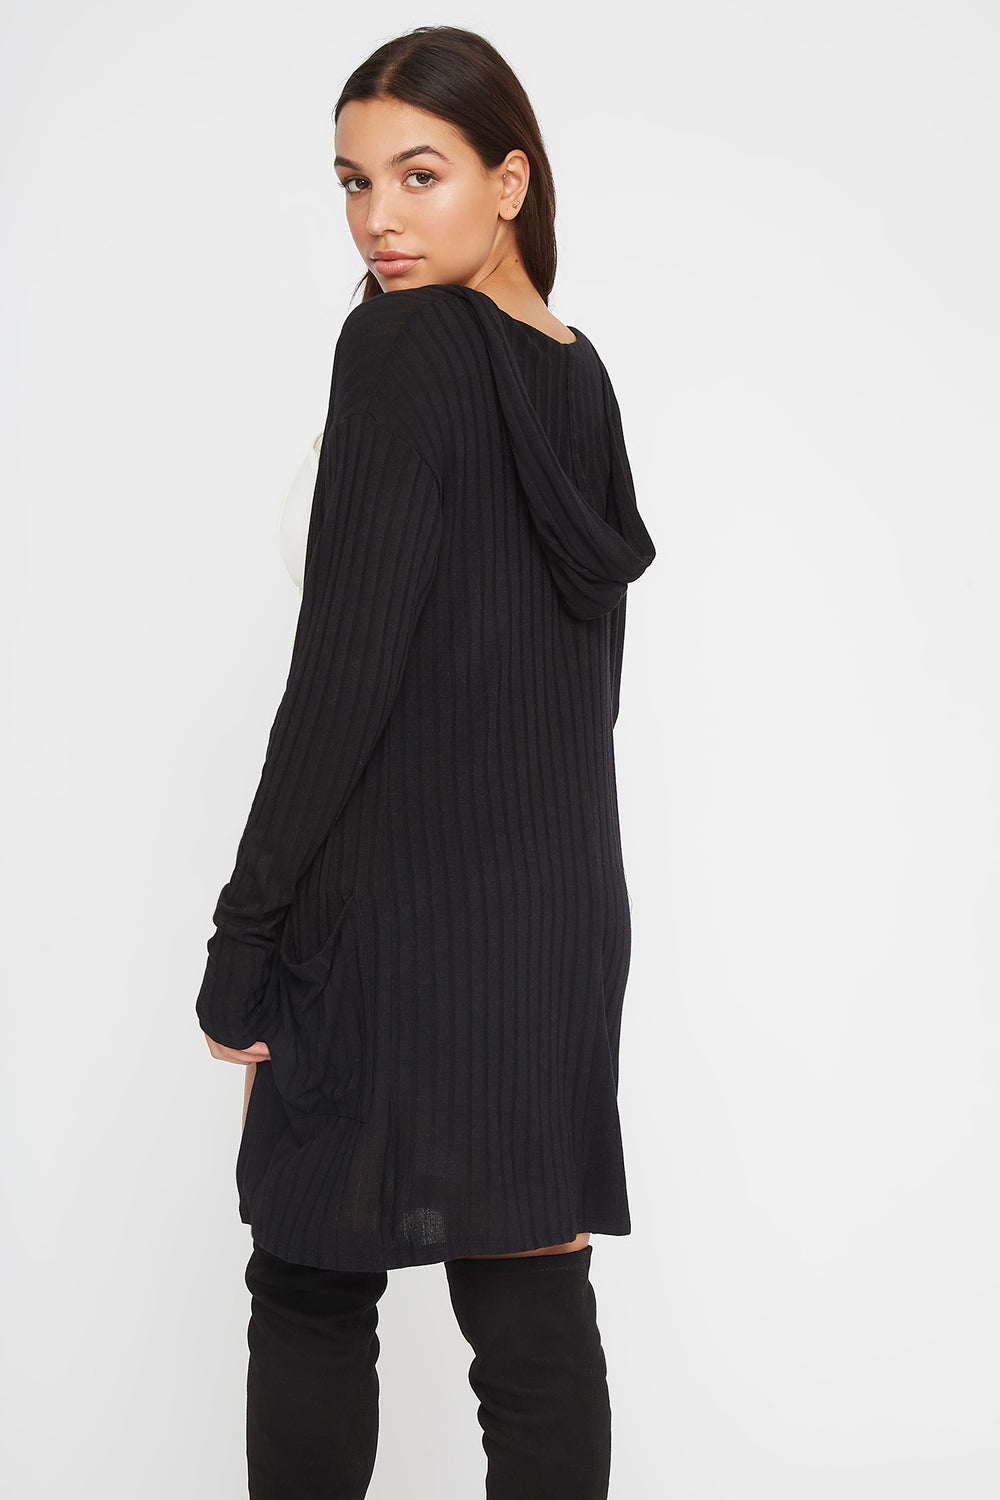 Ribbed Open-Front Cardigan Black